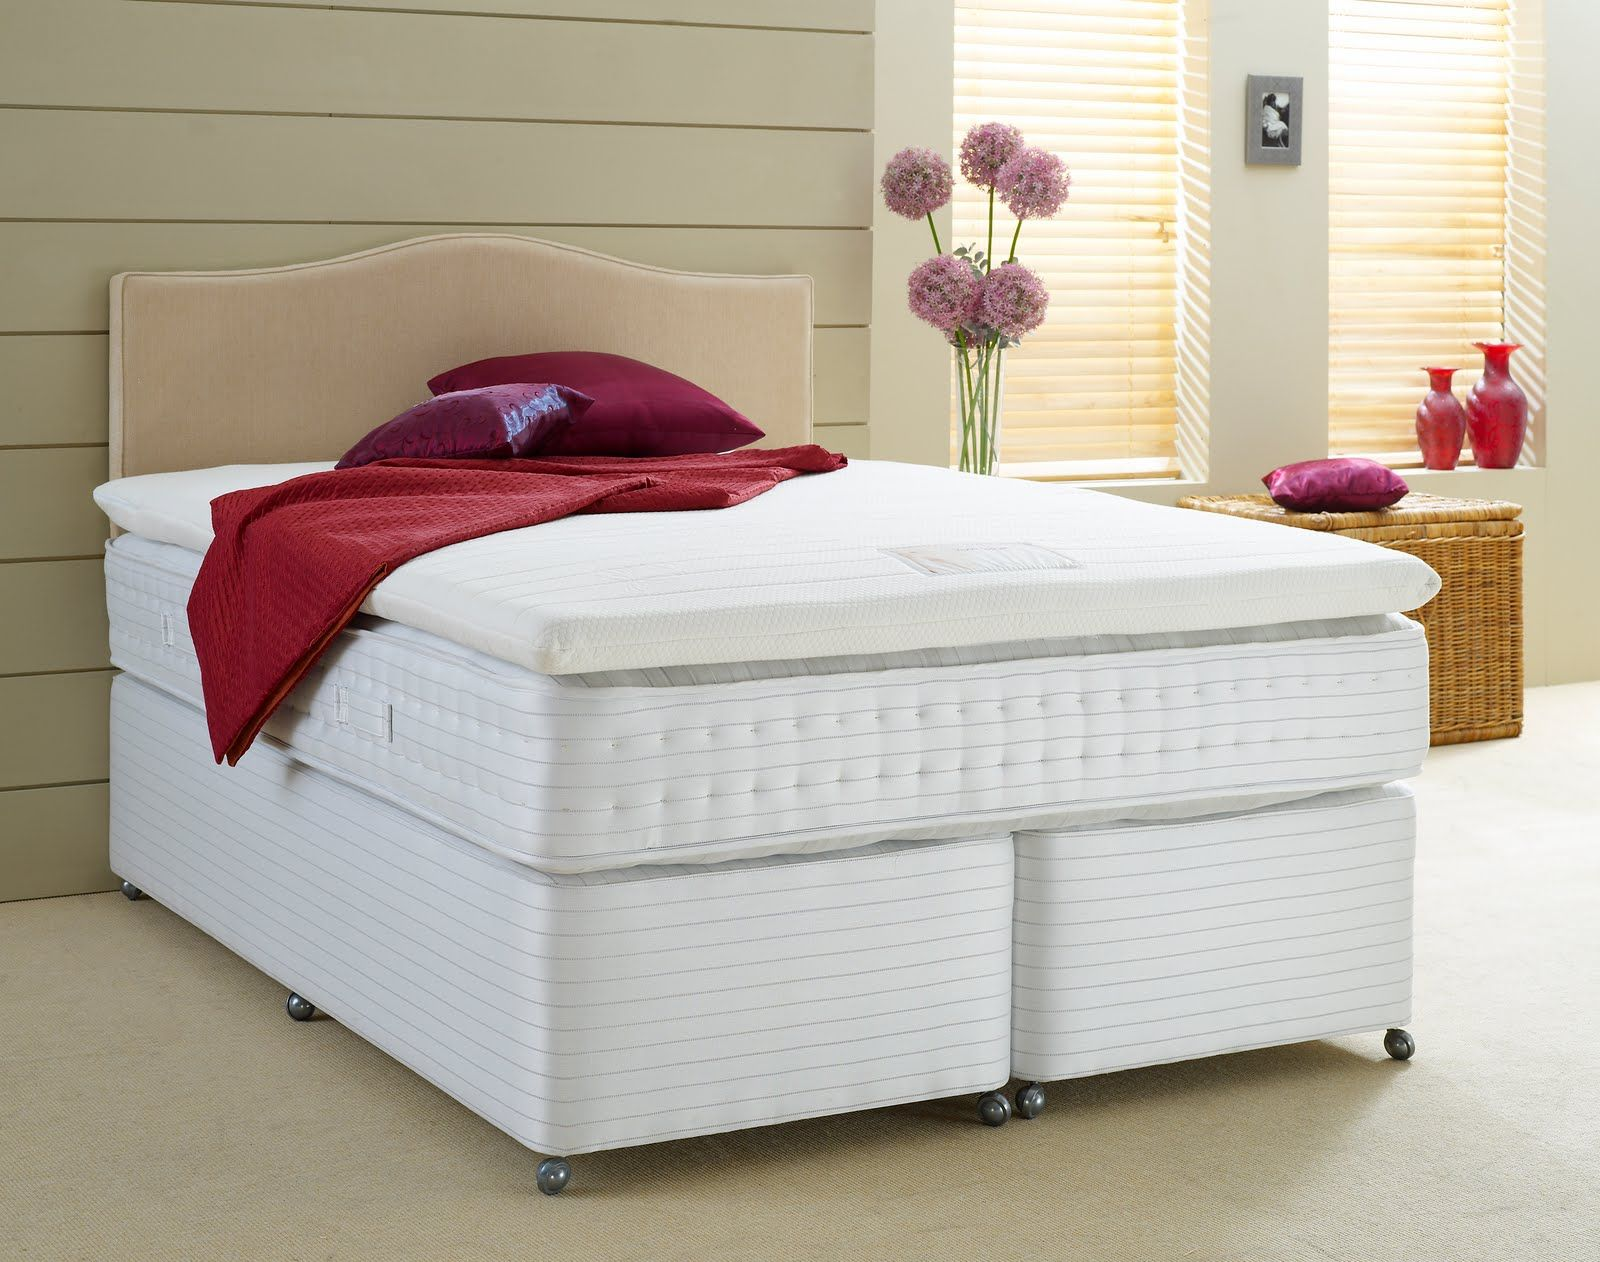 It Is Difficult To Mattresses Especially When You Don T Know Where From Or What Look For